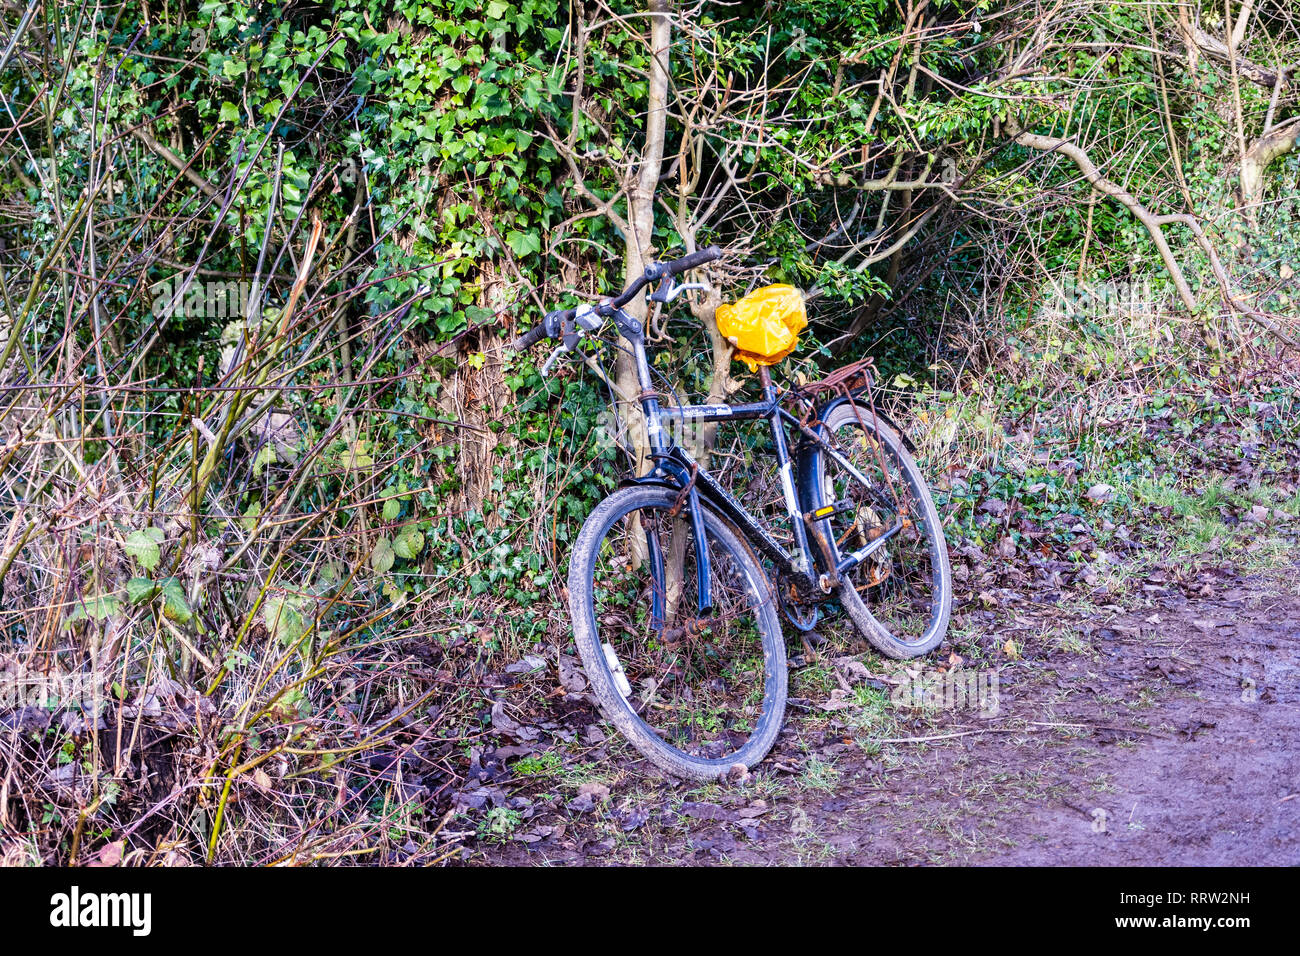 A pushbike with the saddle covered by a carrier bag resting againt an untidy hedge alongside a towpath Stock Photo